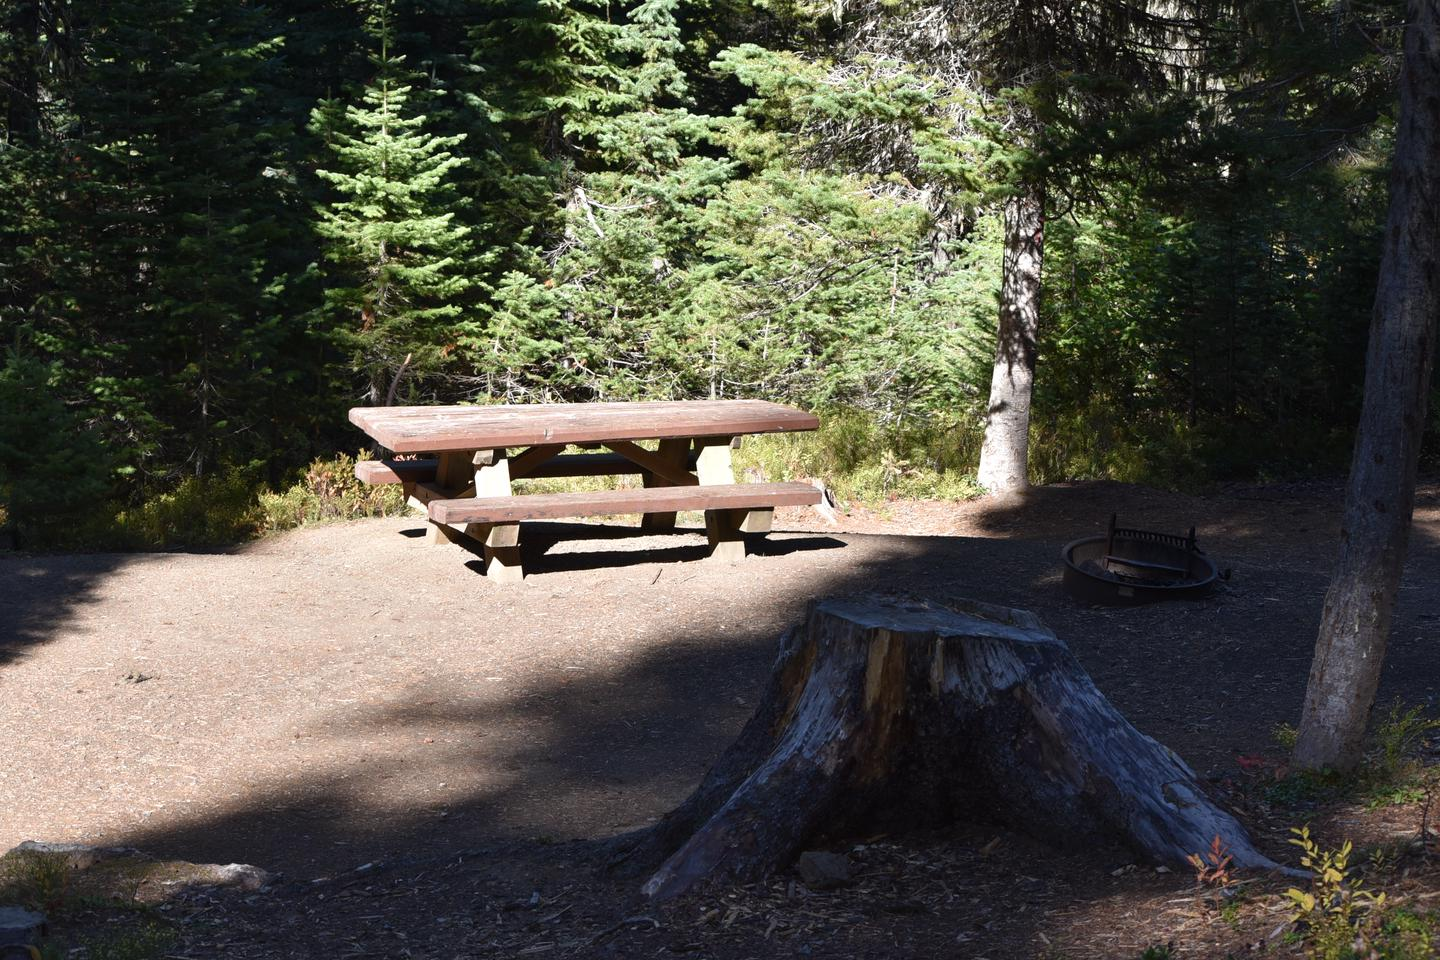 camp site with picnic table and stumpJubilee Lake Campground site #24